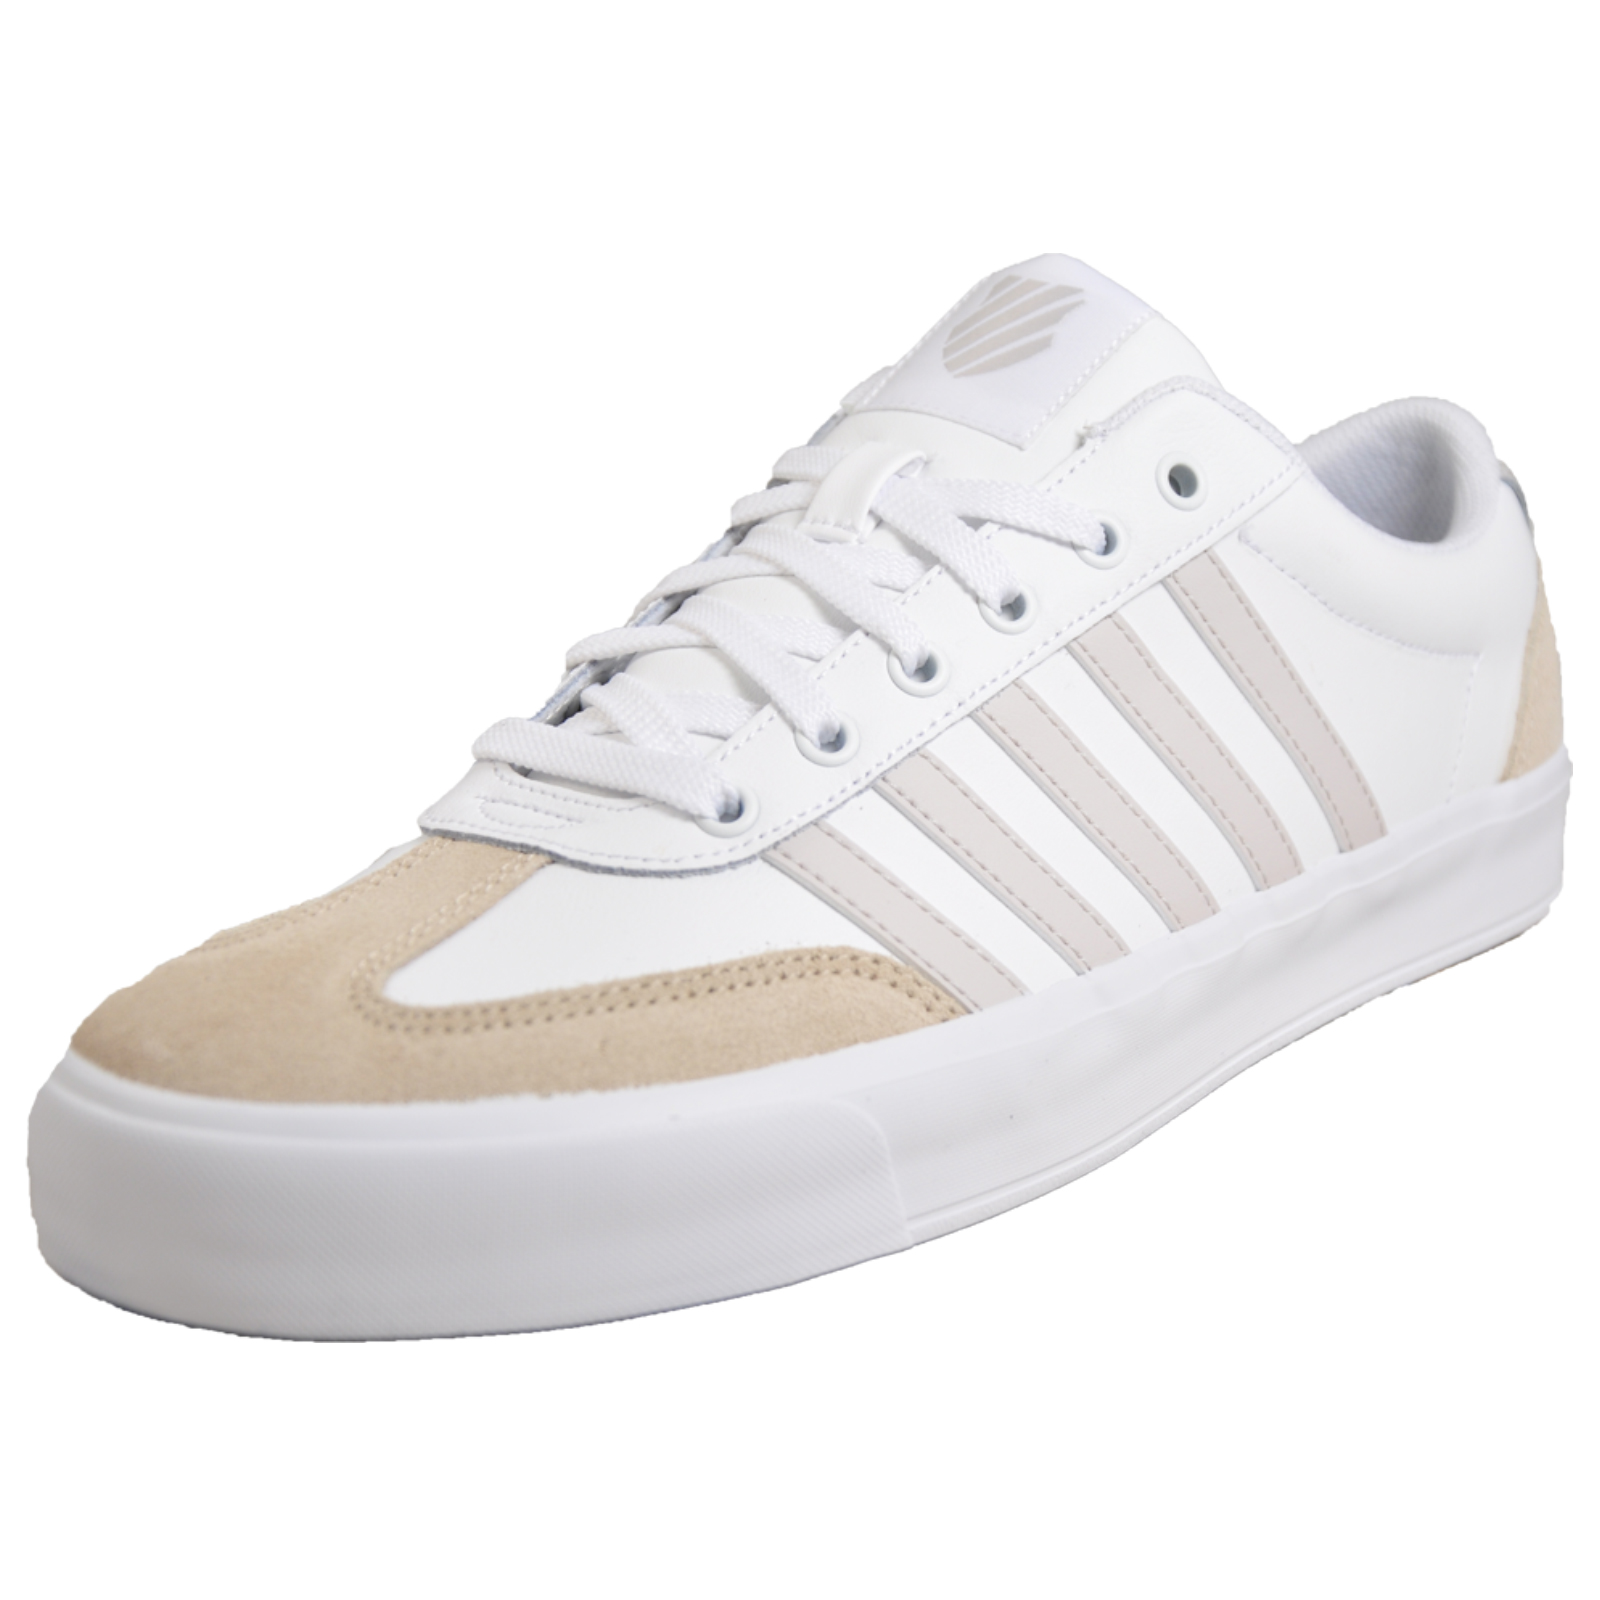 cdca460bd131f K Swiss Addison Vulc Men s Leather Court Fashion Trainers White